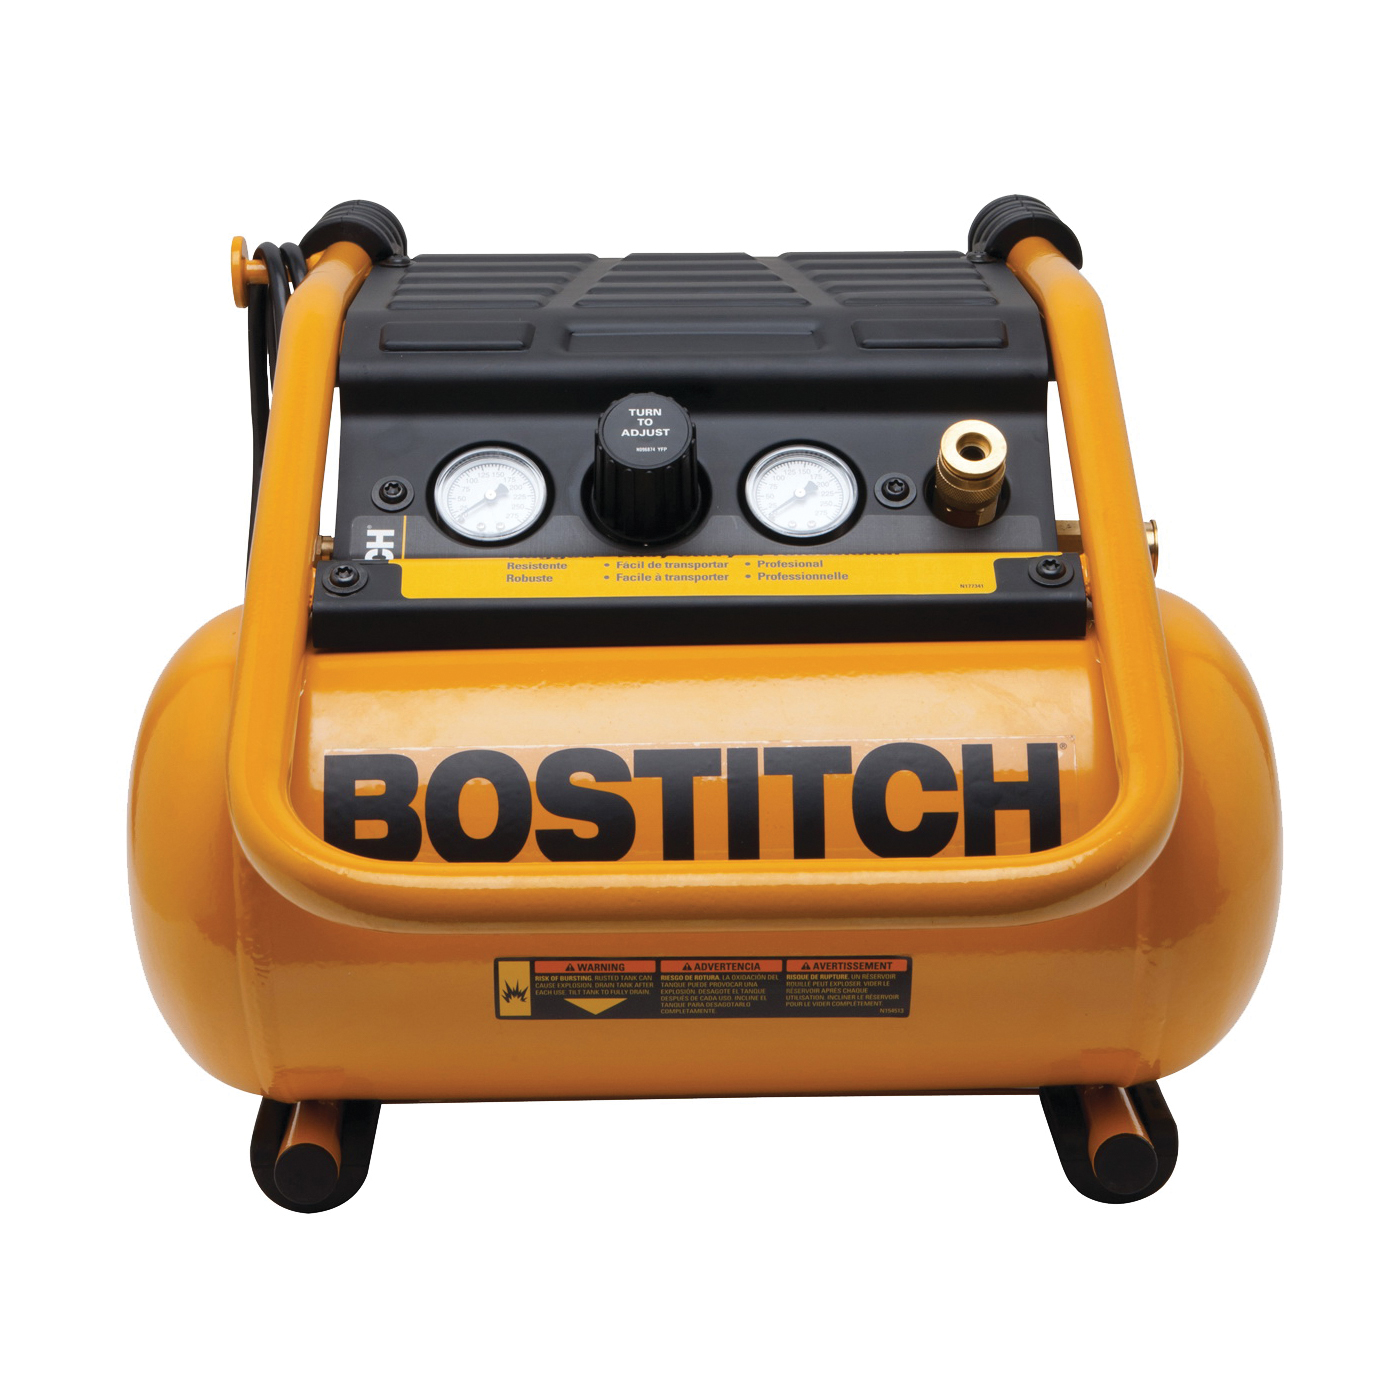 Picture of Bostitch BTFP01012 Trim Compressor, 2.5 gal Tank, 0.8 hp, 120 V, 90 psi Pressure, 2 scfm Air